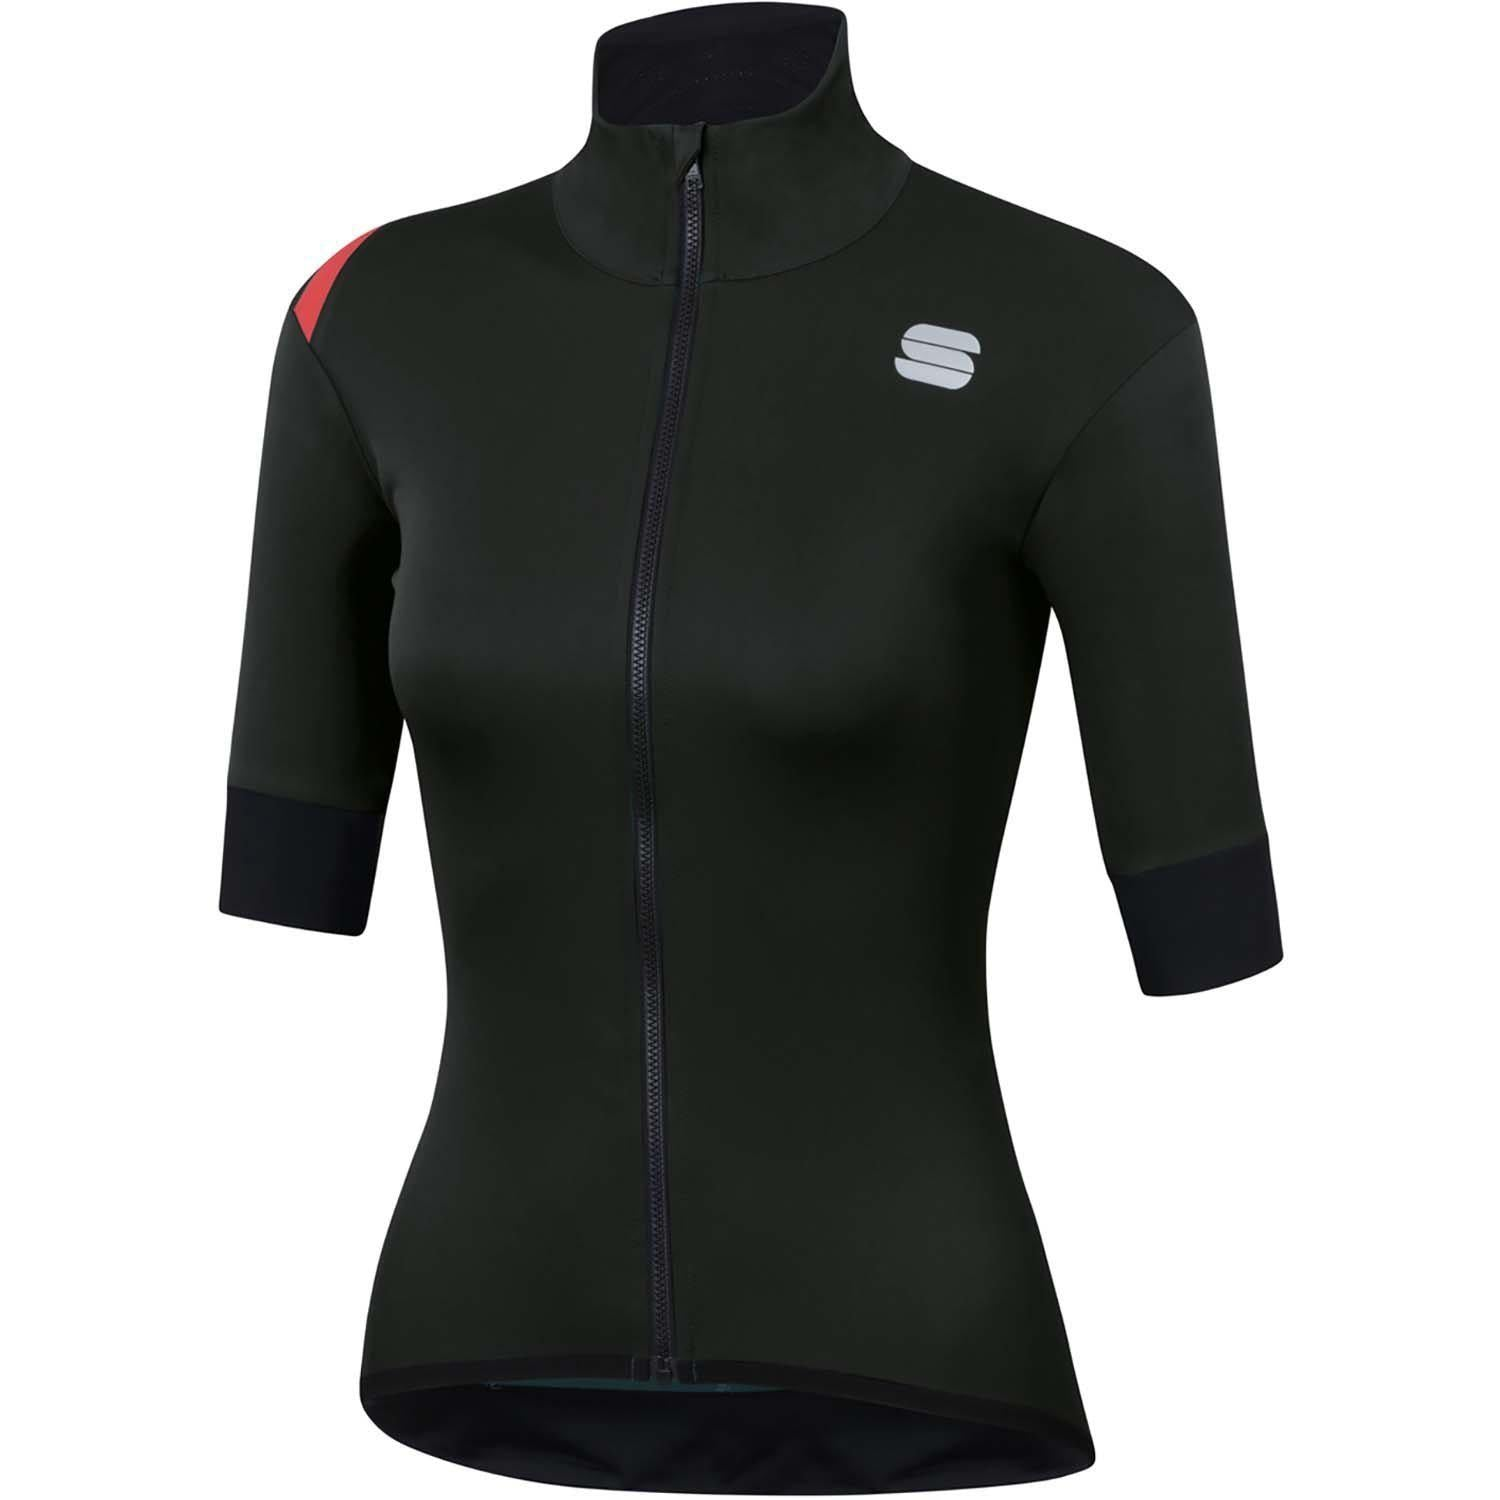 Sportful-Sportful Fiandre Light NoRain Women's Short Sleeve Jacket-Black-XS-SF200420021-saddleback-elite-performance-cycling